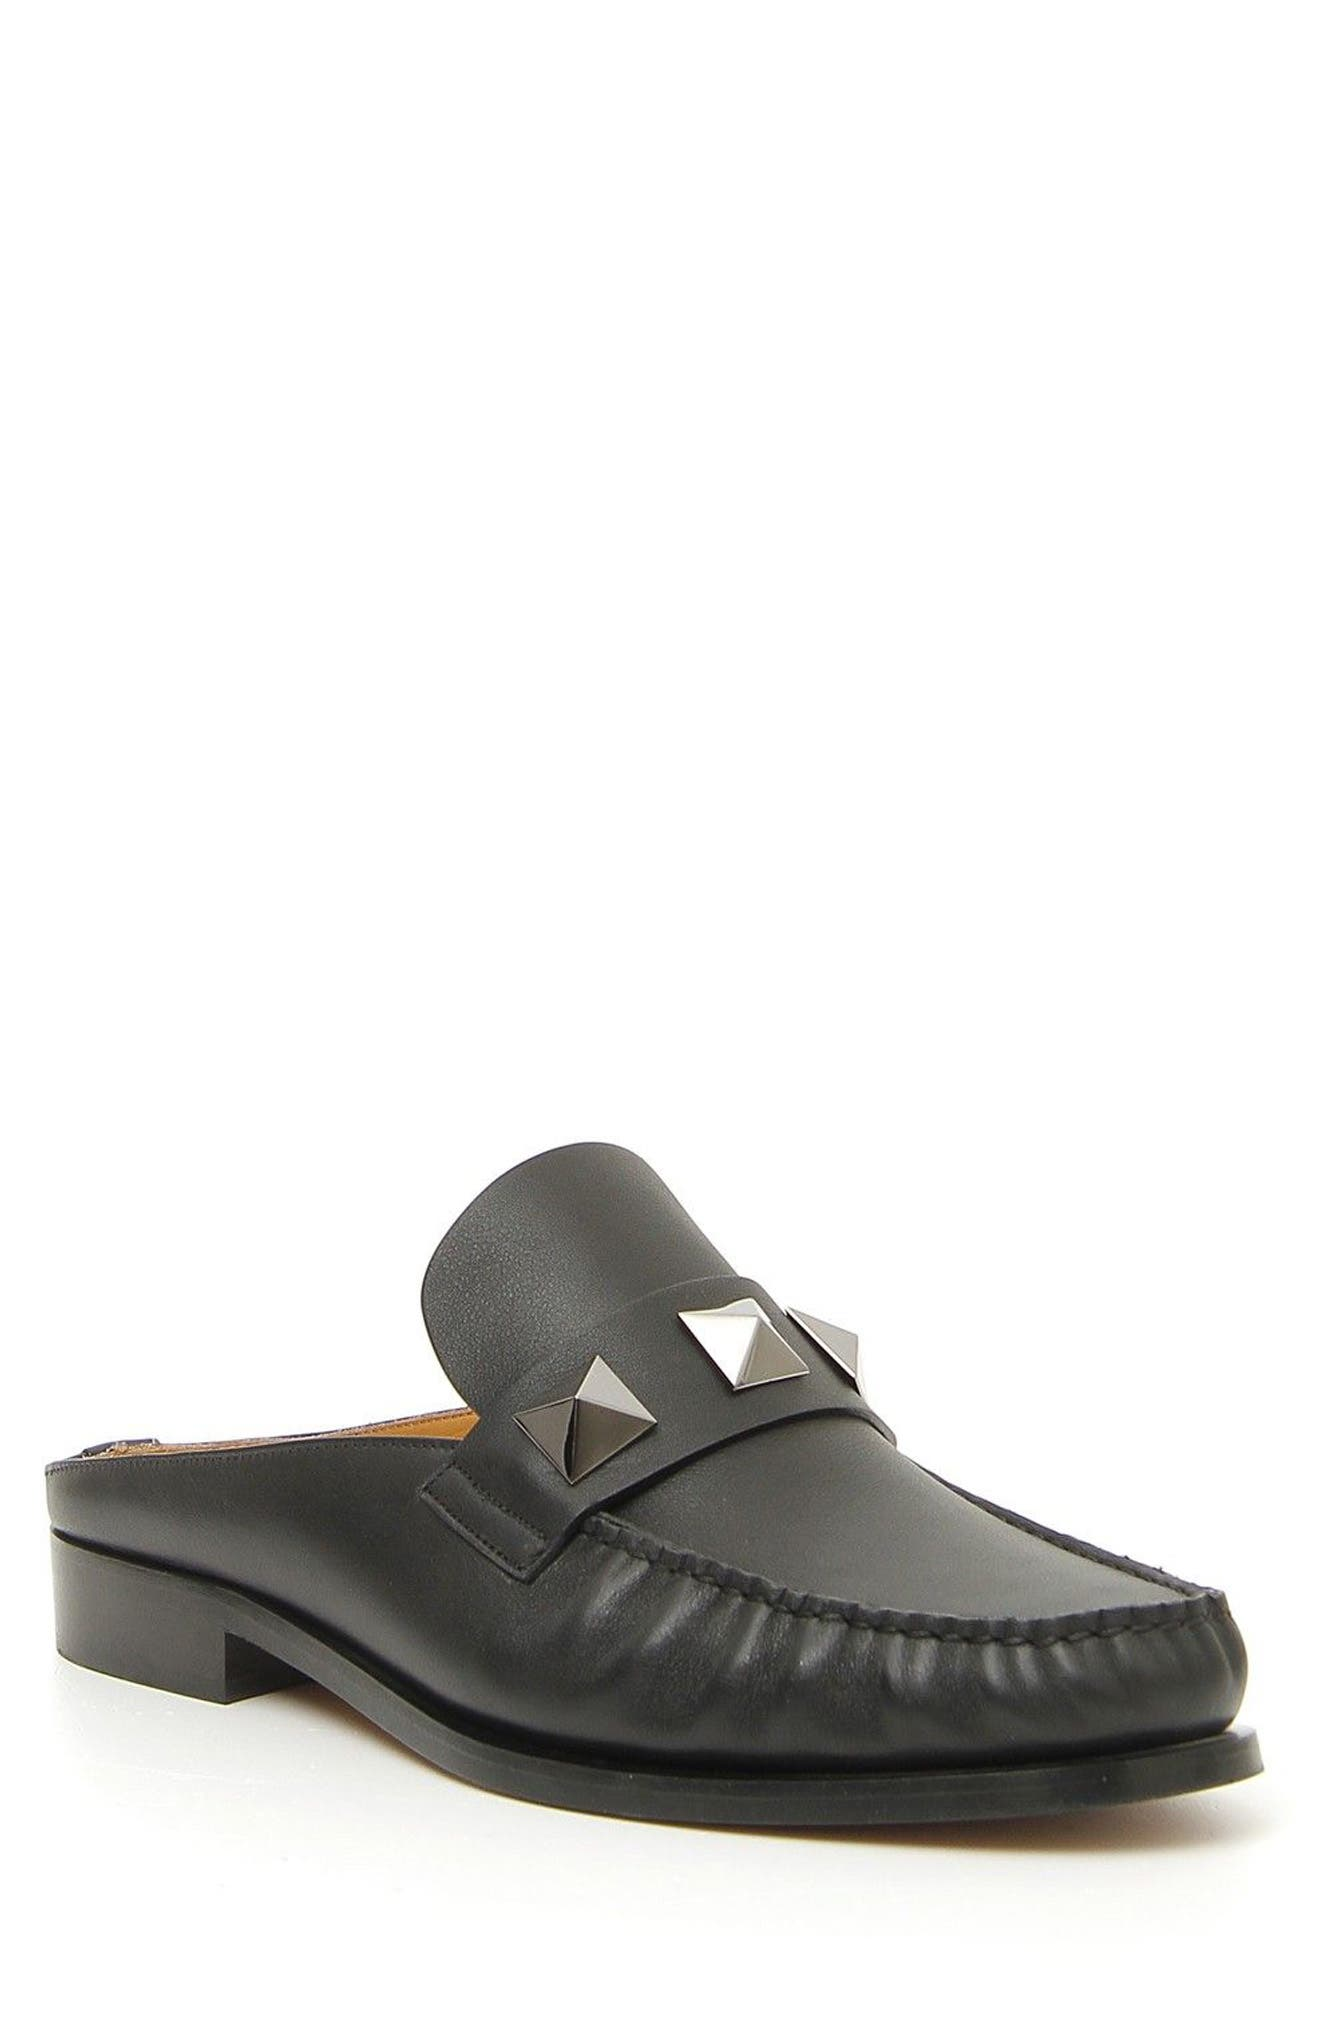 Lock Loafer Mule,                         Main,                         color, Nero